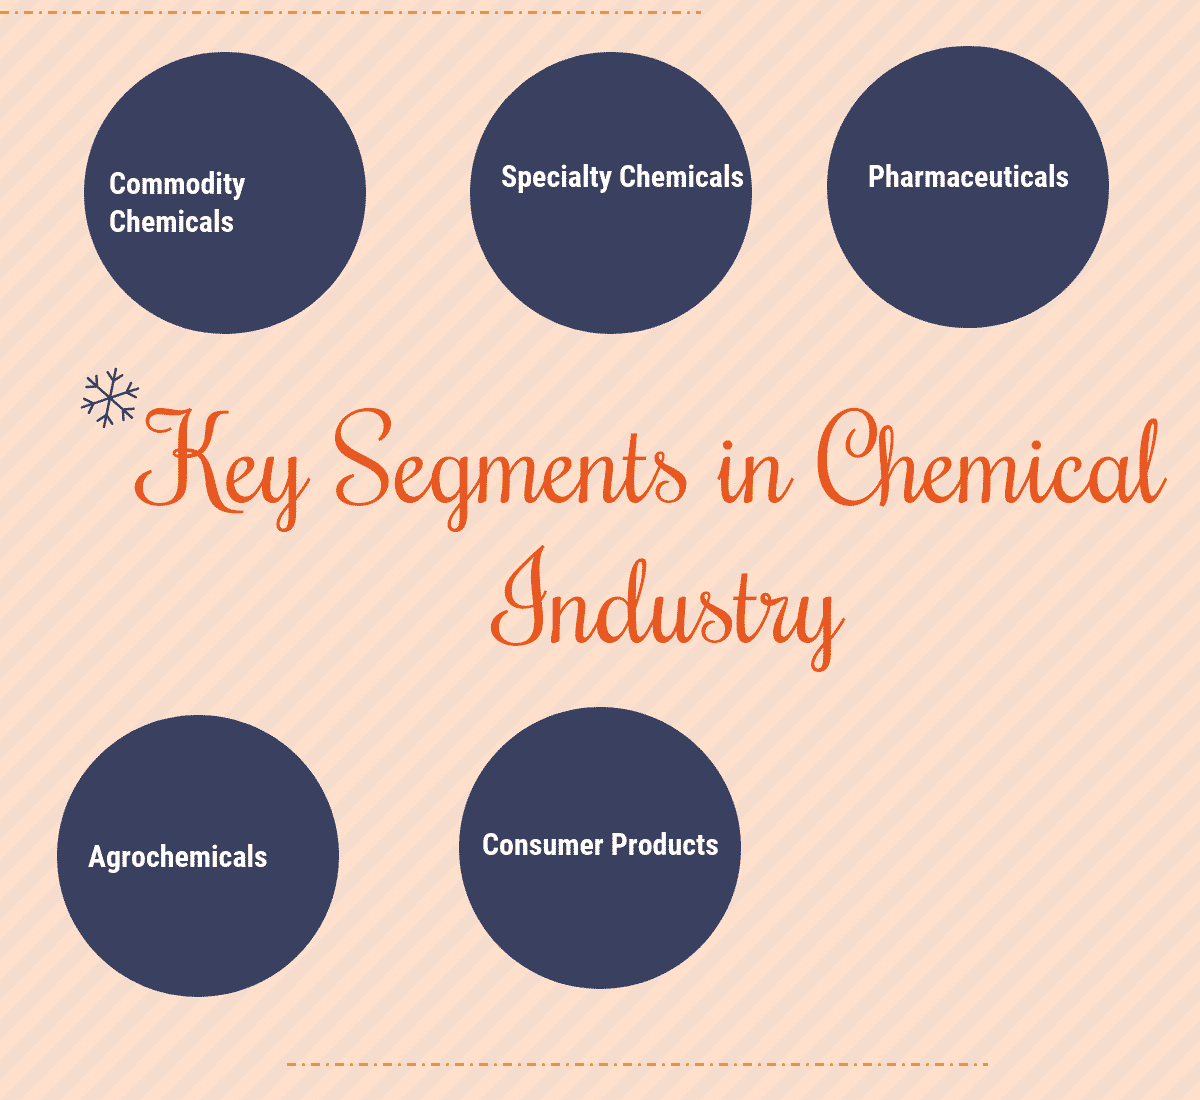 What are the Key Segments in Chemical Industry